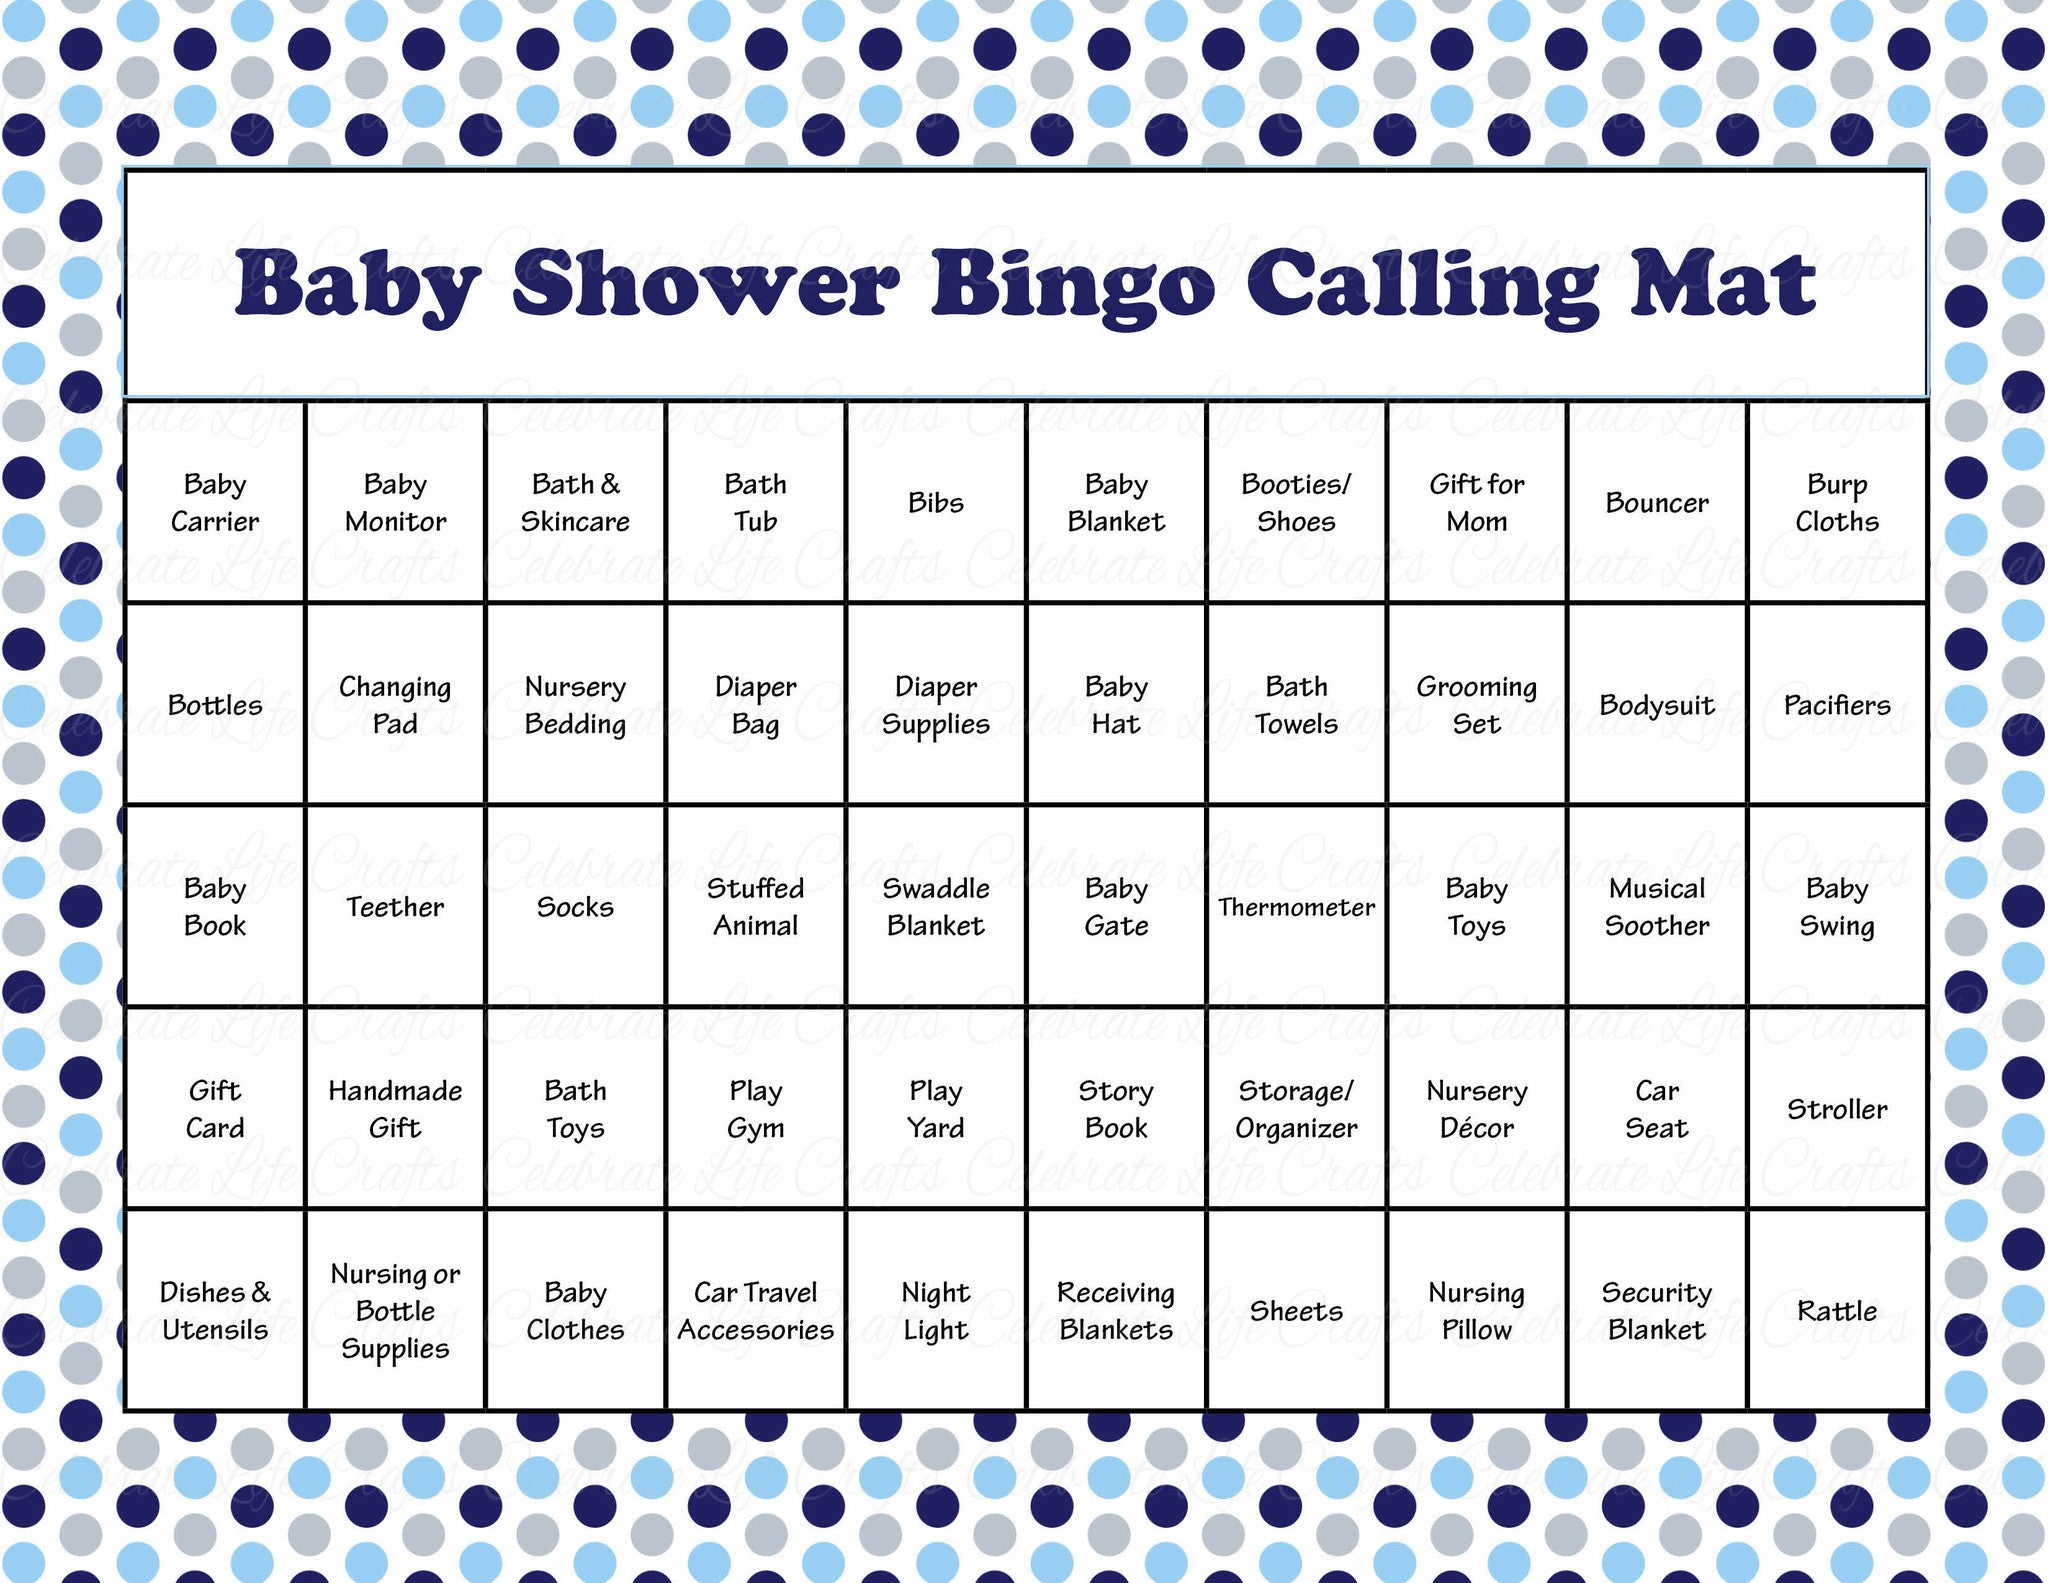 picture about Printable Bingo Calling Cards called Whale Youngster Shower Recreation Obtain for Boy Kid Bingo